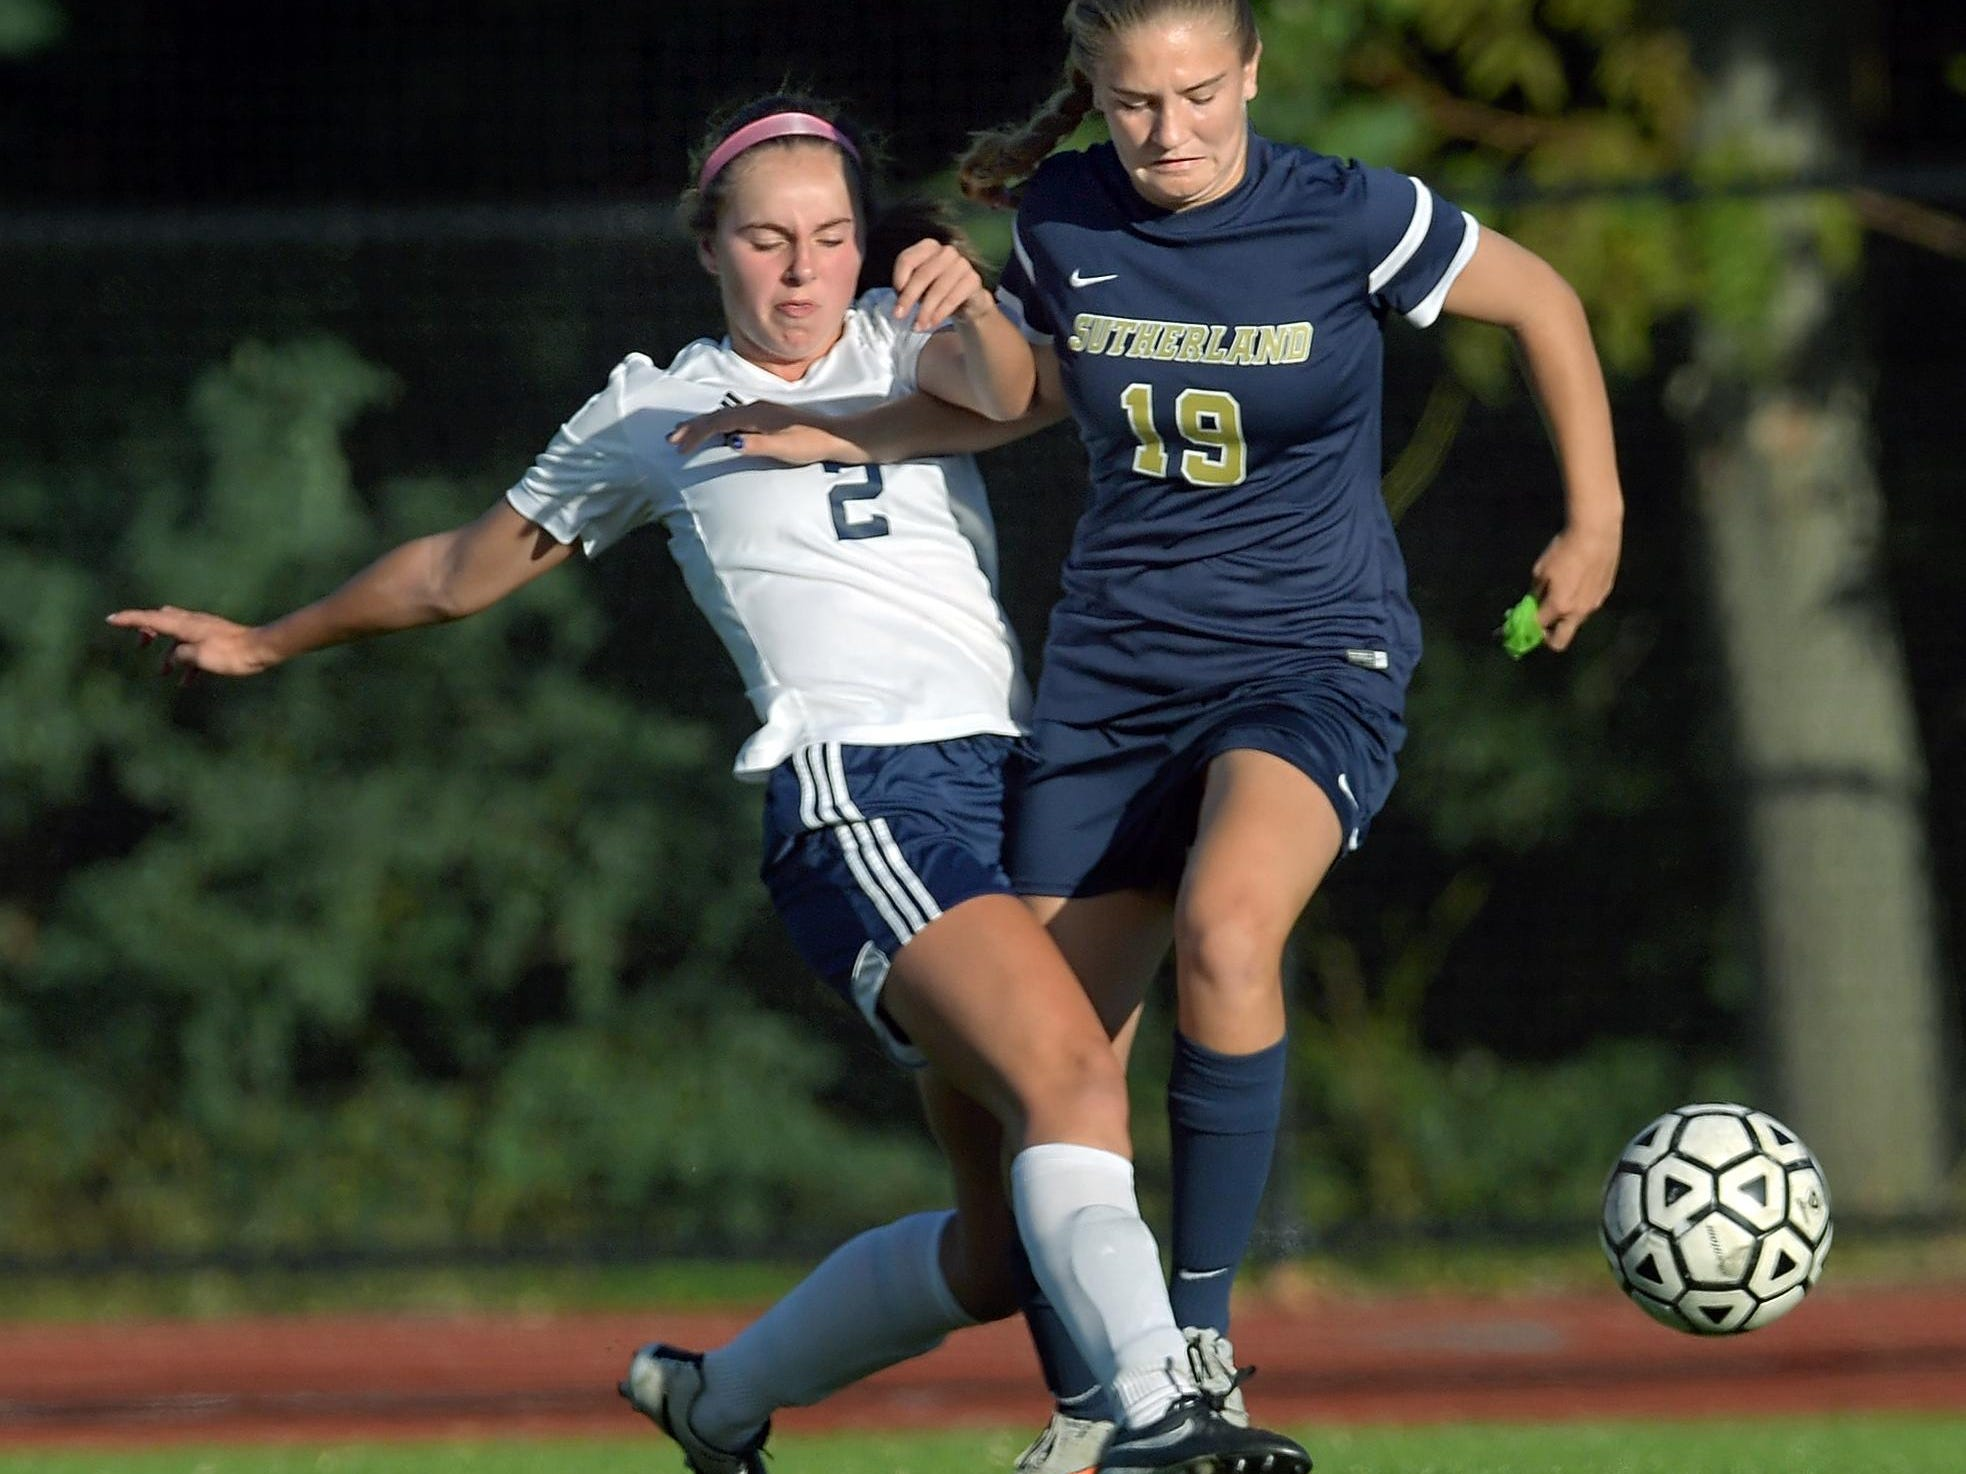 Mercy's Diana Colpoys, left, tackles the ball away from Pittsford Sutherland's Grace Allen.